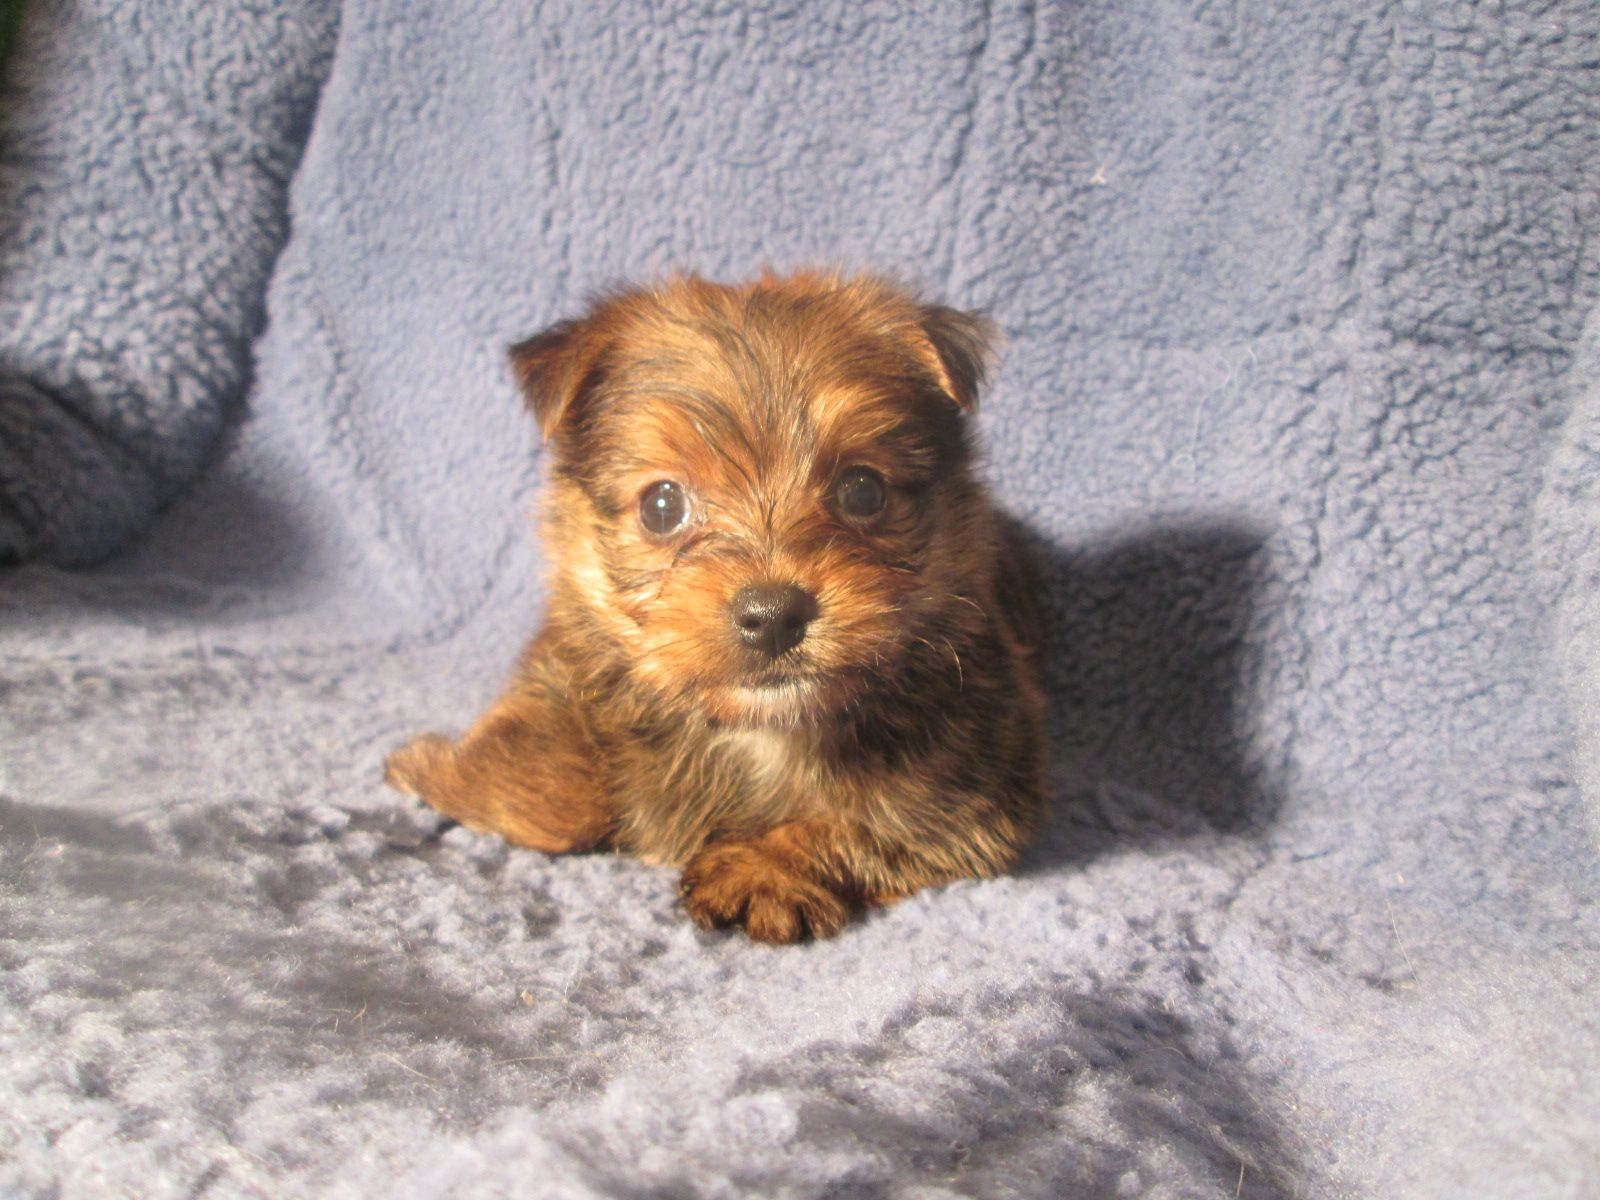 Super Adorable Yopom Puppies Available Yorkie X Pomeranian 8 12 Weeks Of Age Permanent Shots And Wormings Co Mixed Breed Puppies Puppies Cute Puppies